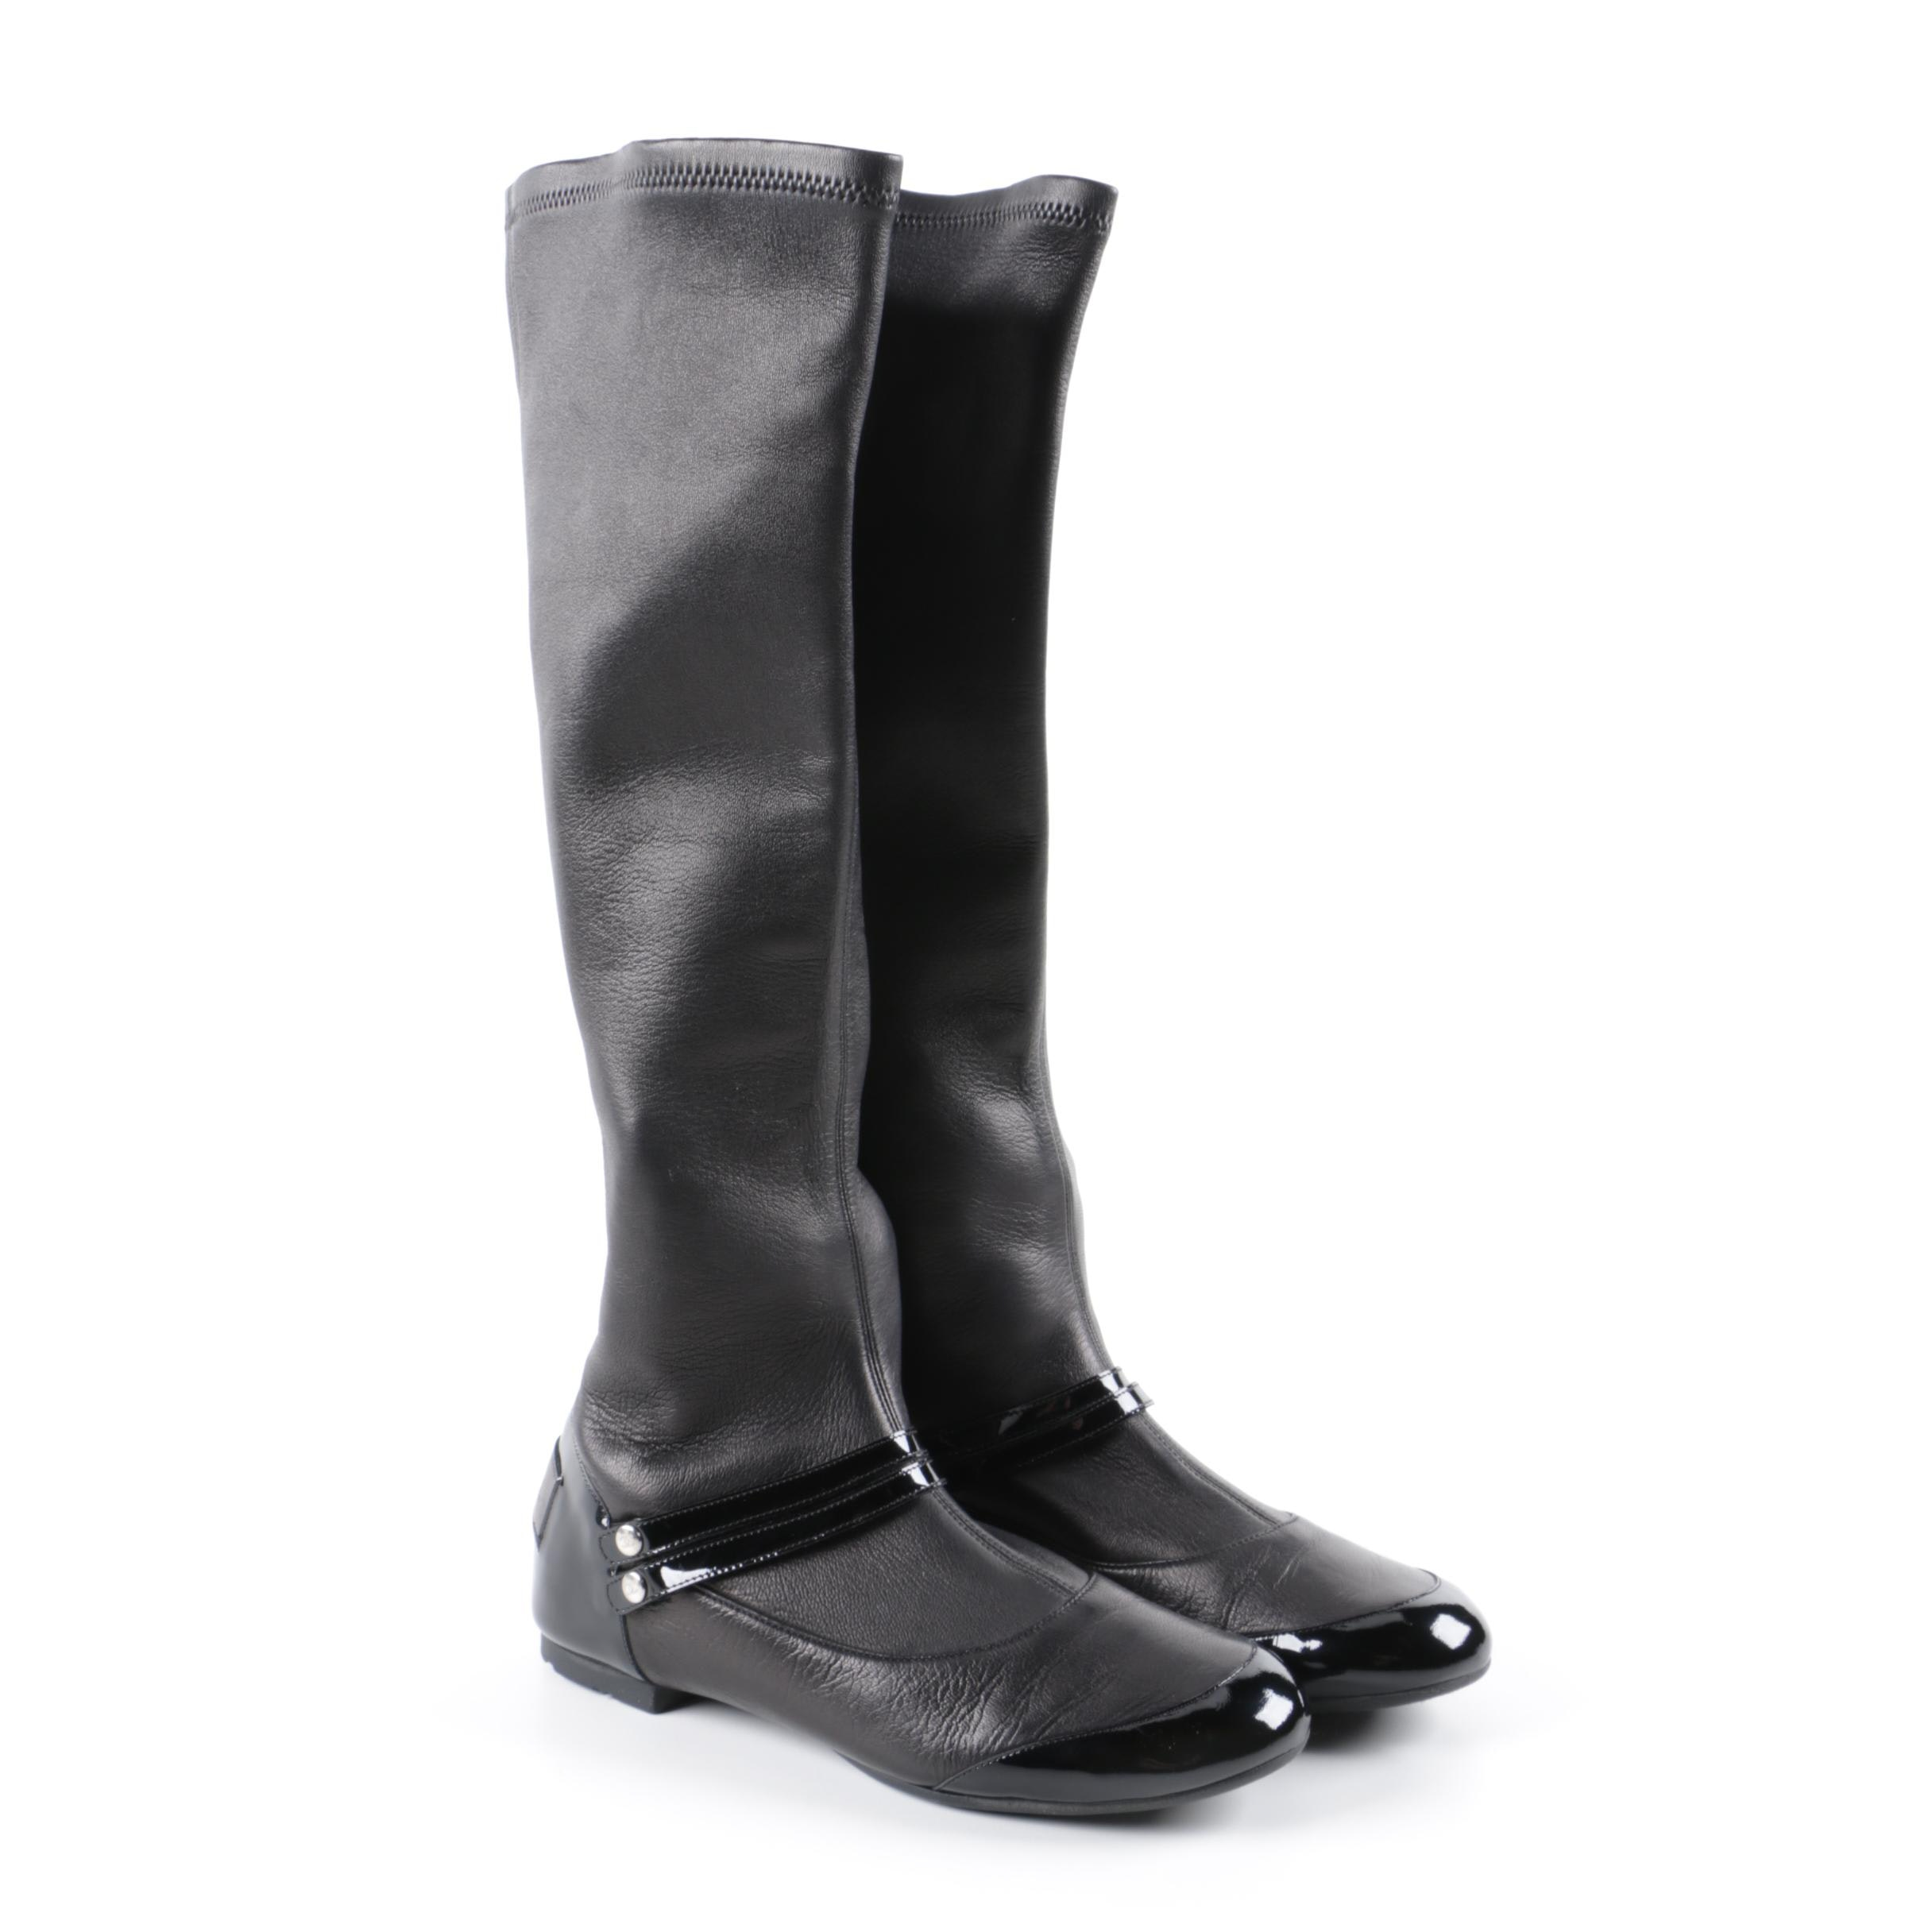 Chanel Tall Black Leather and Patent Leather Pull-On Boots